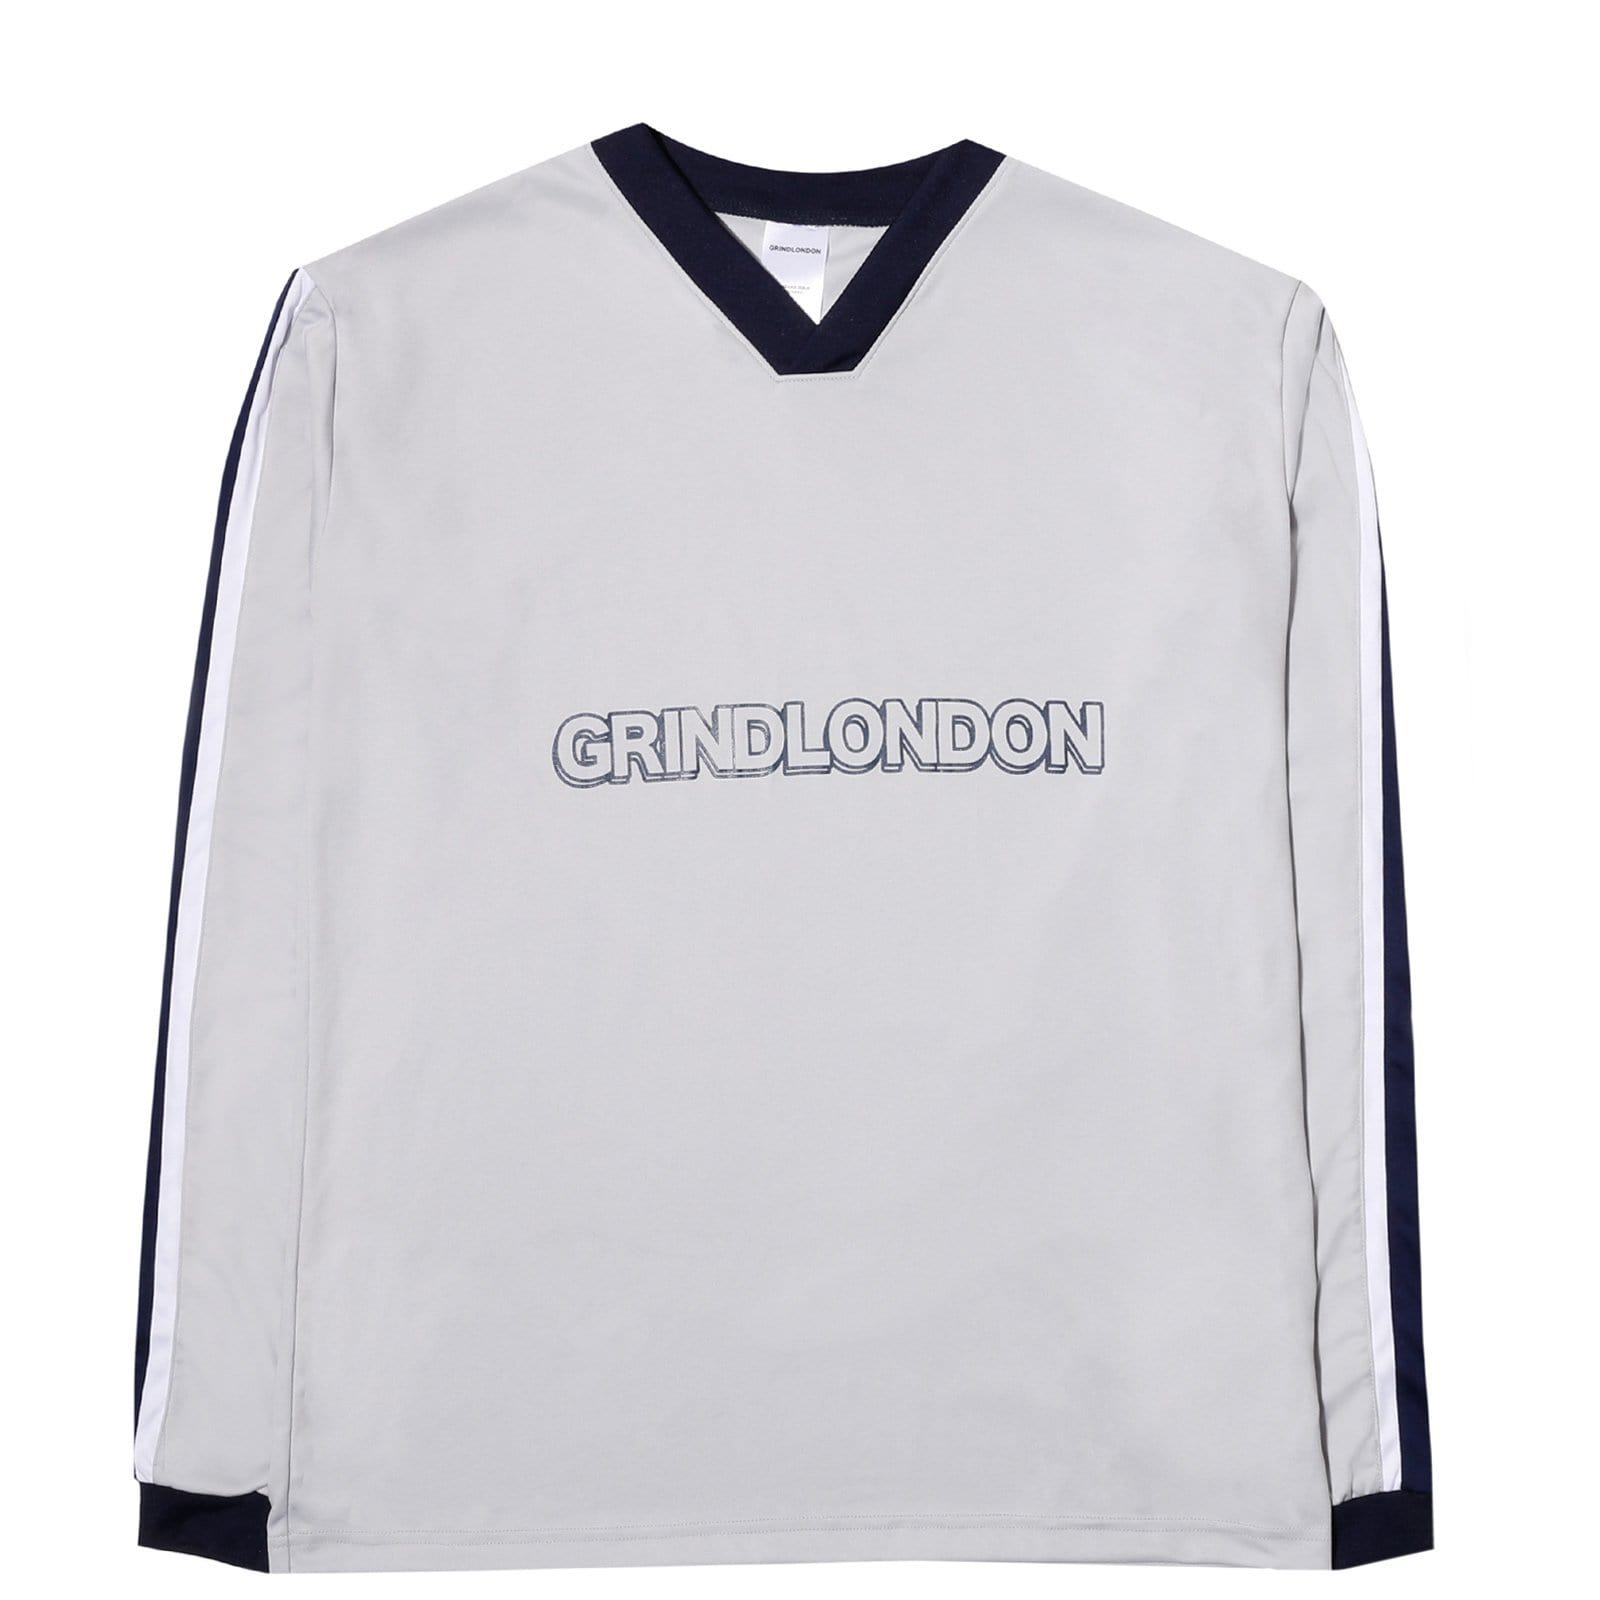 76c79266a1f72c https   bdgastore.com products blouson-681941004 2019-04-12T22 ...